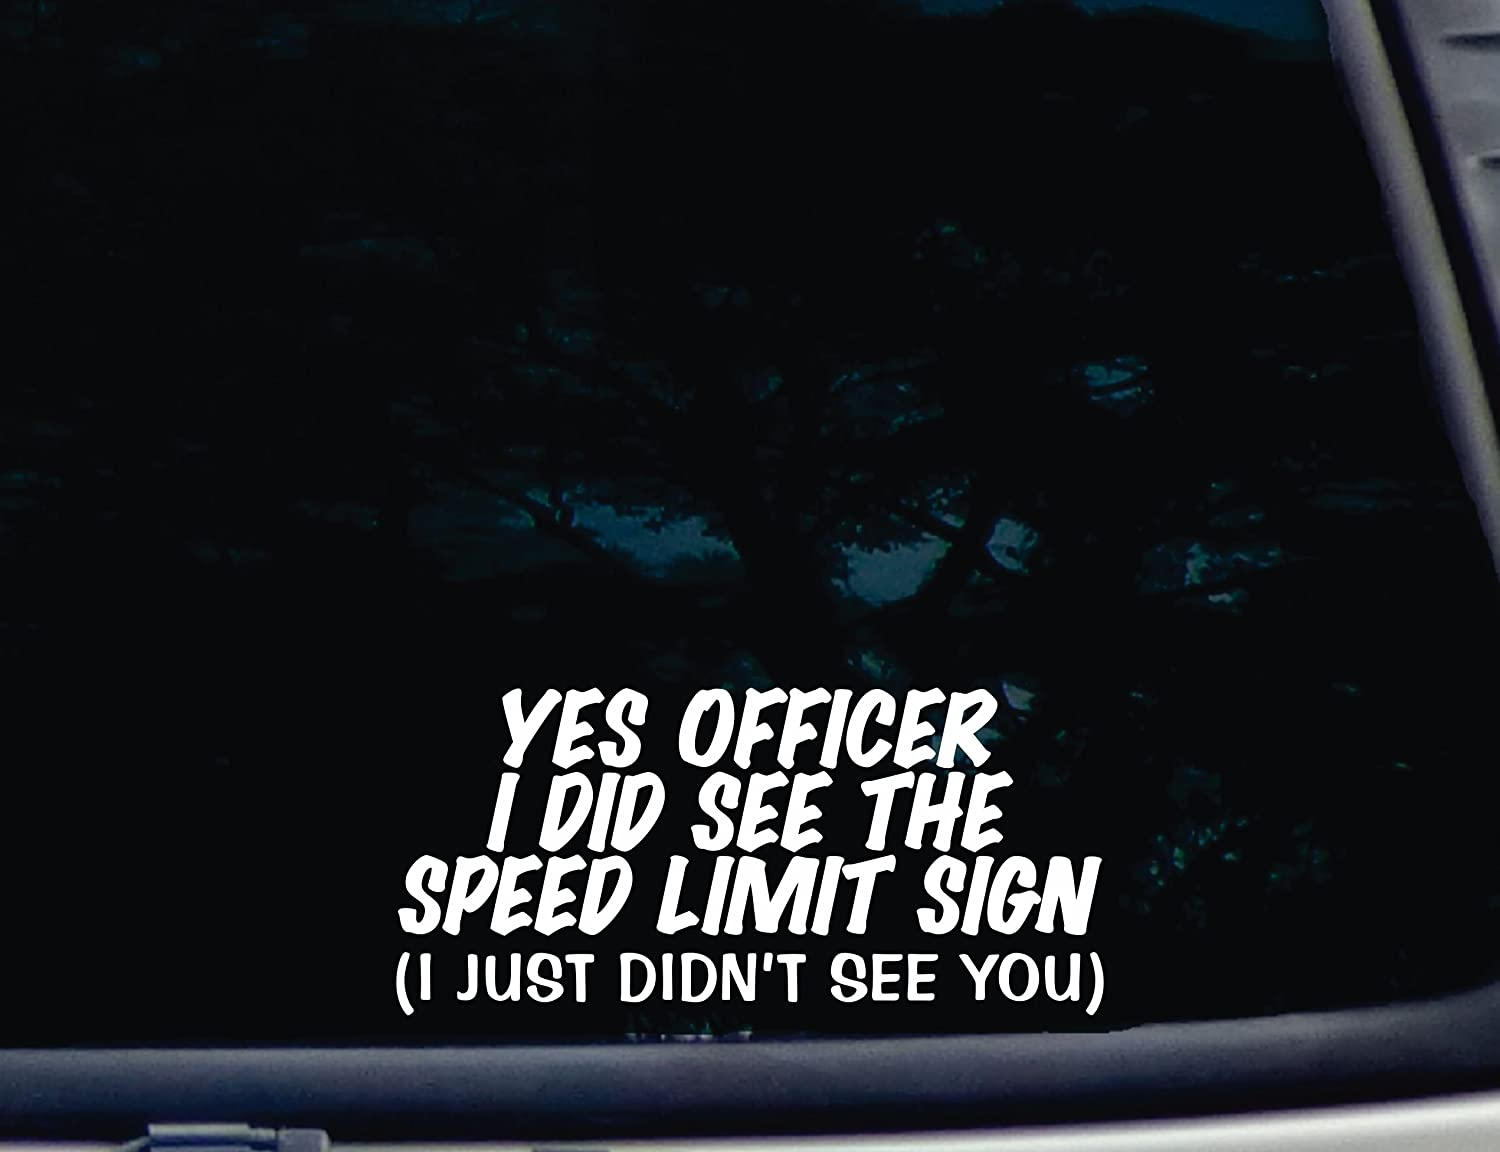 """YES Officer I Did See The Speed Limit Sign (I just Didn't See You) - 8"""" x 3 3/4"""" die Cut Vinyl Decal for Windows, Cars, Trucks, Tool Boxes, laptops, MacBook - virtually Any Hard, Smooth Surface"""